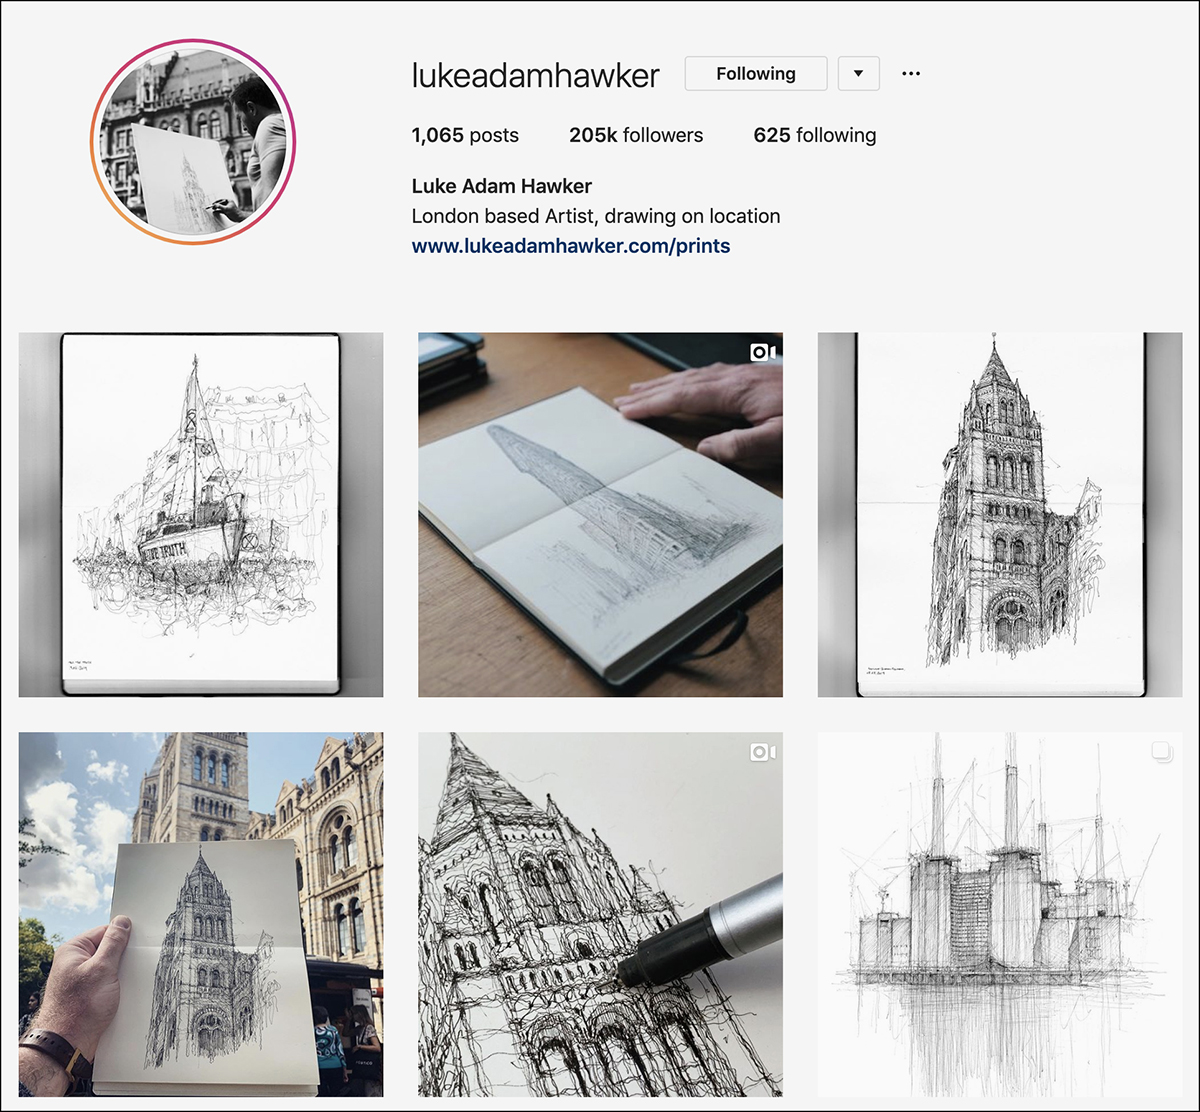 lukeadamhawker Instagram account - good for sketching